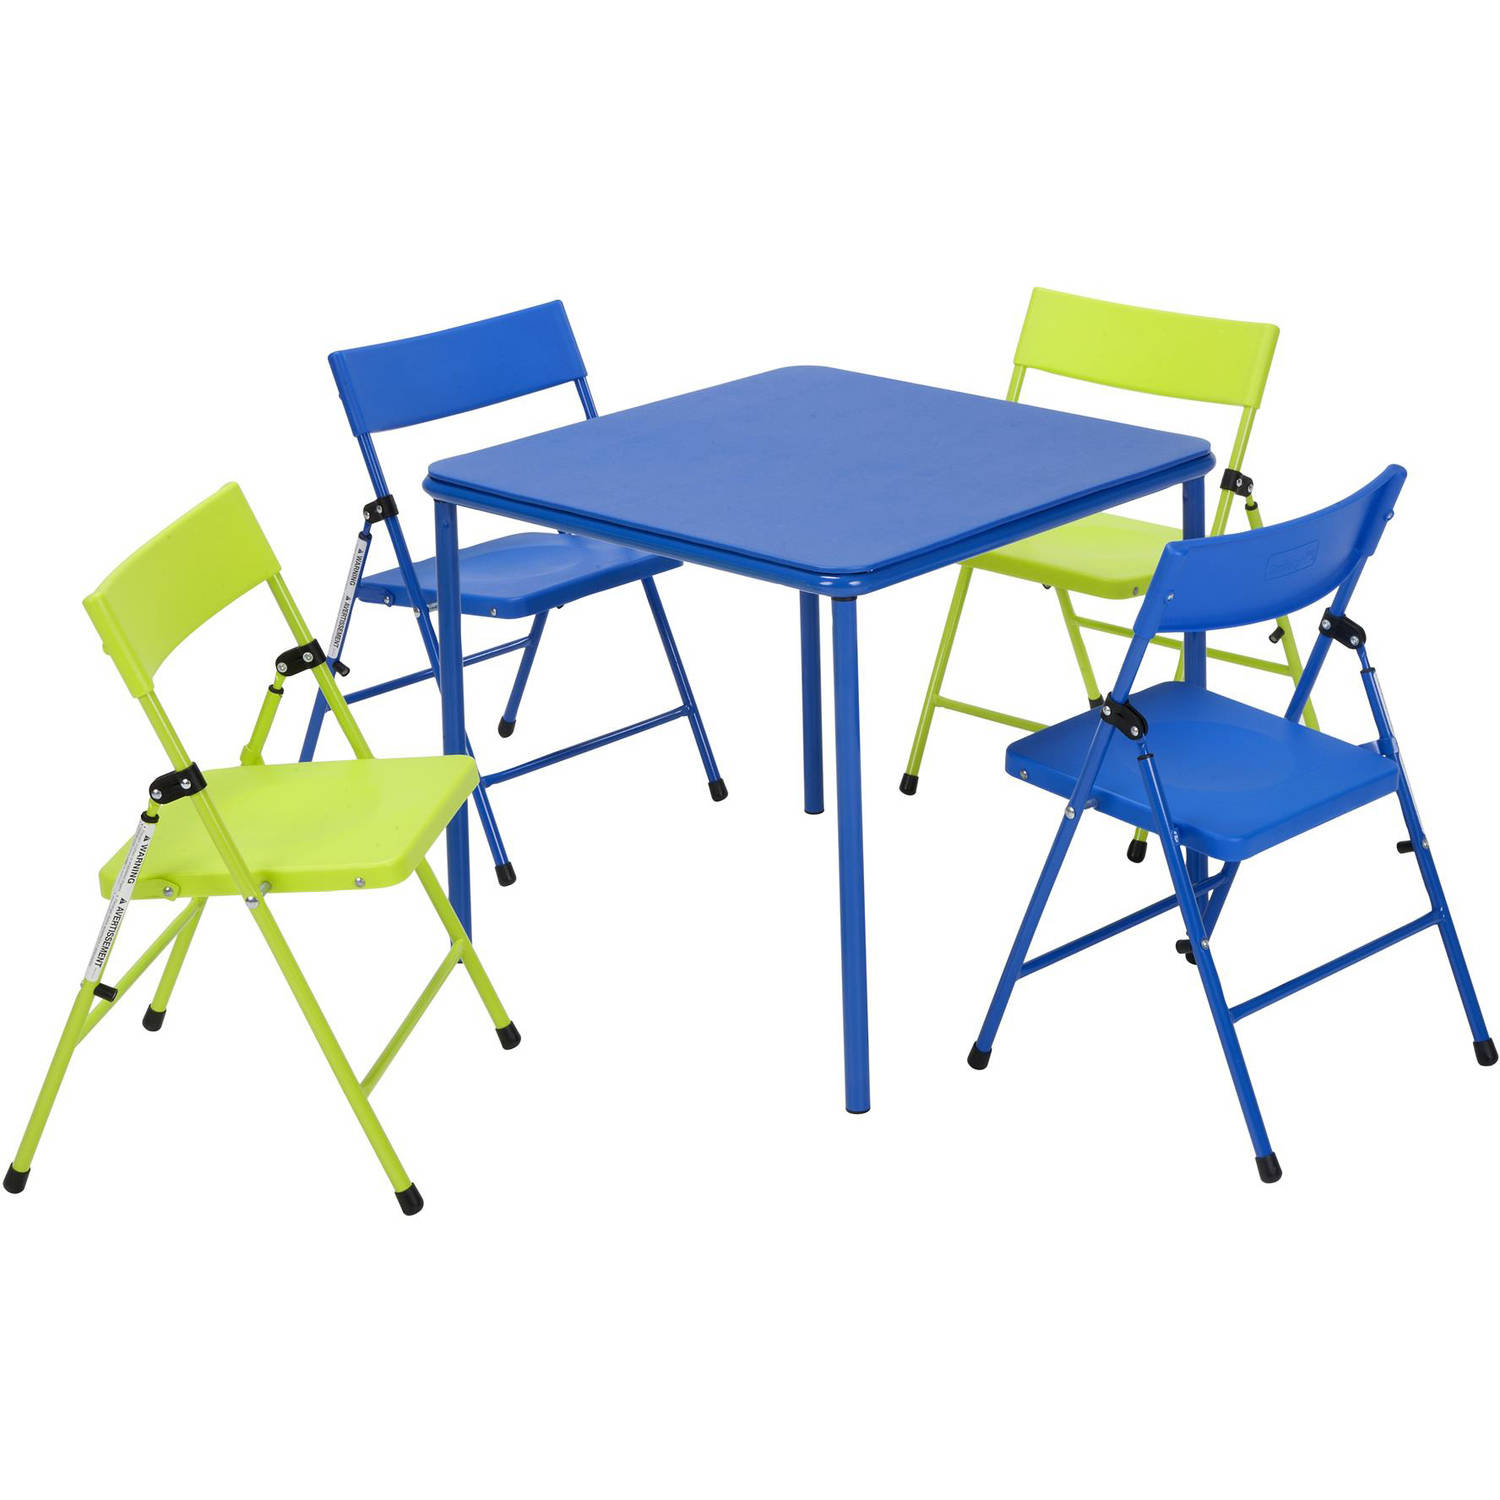 Cosco 5-Piece Kid\u0027s Table and Chair Set Multiple Colors  sc 1 st  Walmart & Cosco 5-Piece Kid\u0027s Table and Chair Set Multiple Colors - Walmart.com